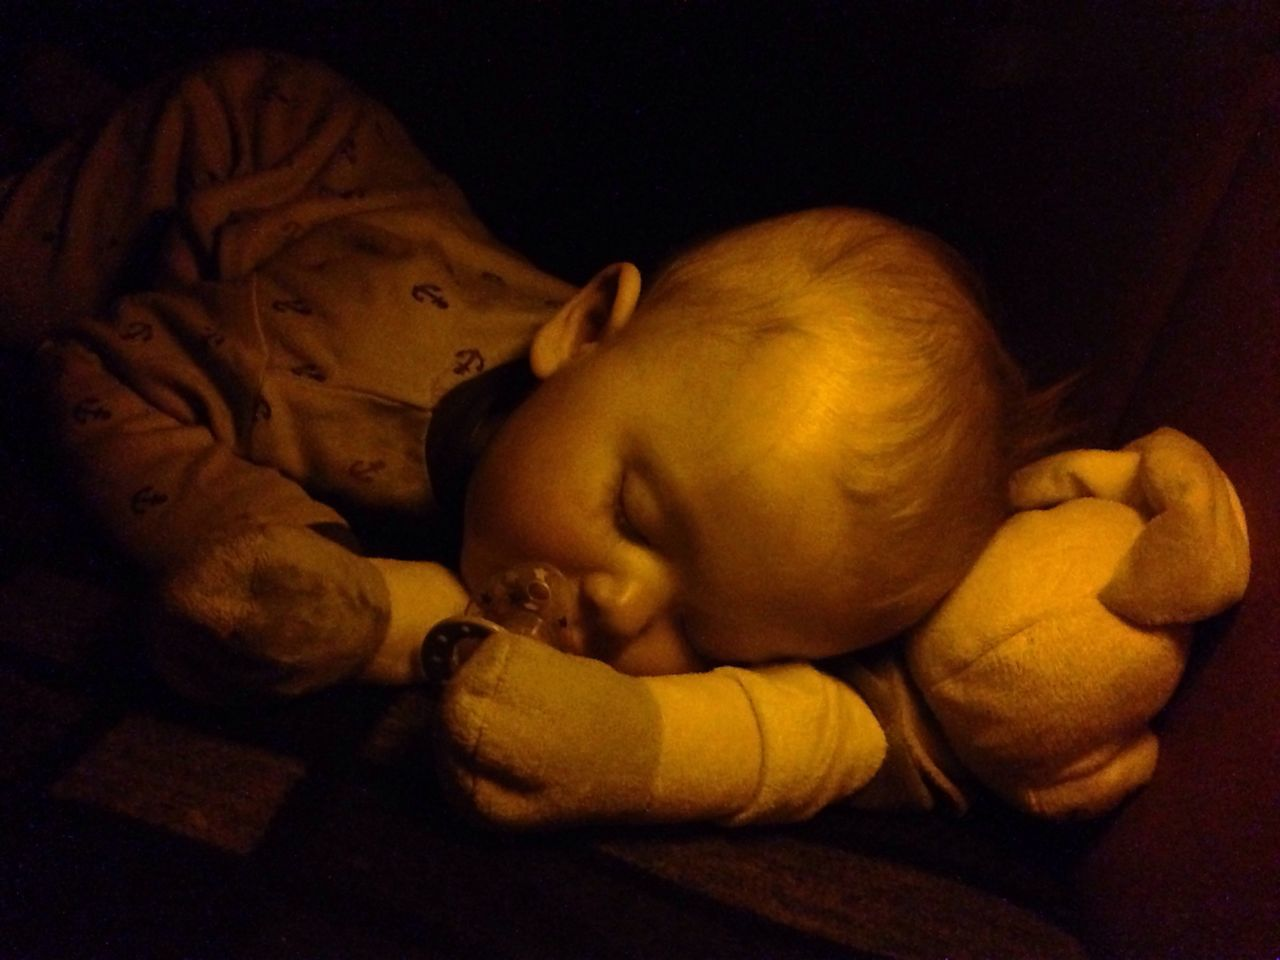 baby, childhood, indoors, sleeping, lying down, cute, babyhood, one person, teddy bear, real people, stuffed toy, newborn, close-up, fragility, babies only, people